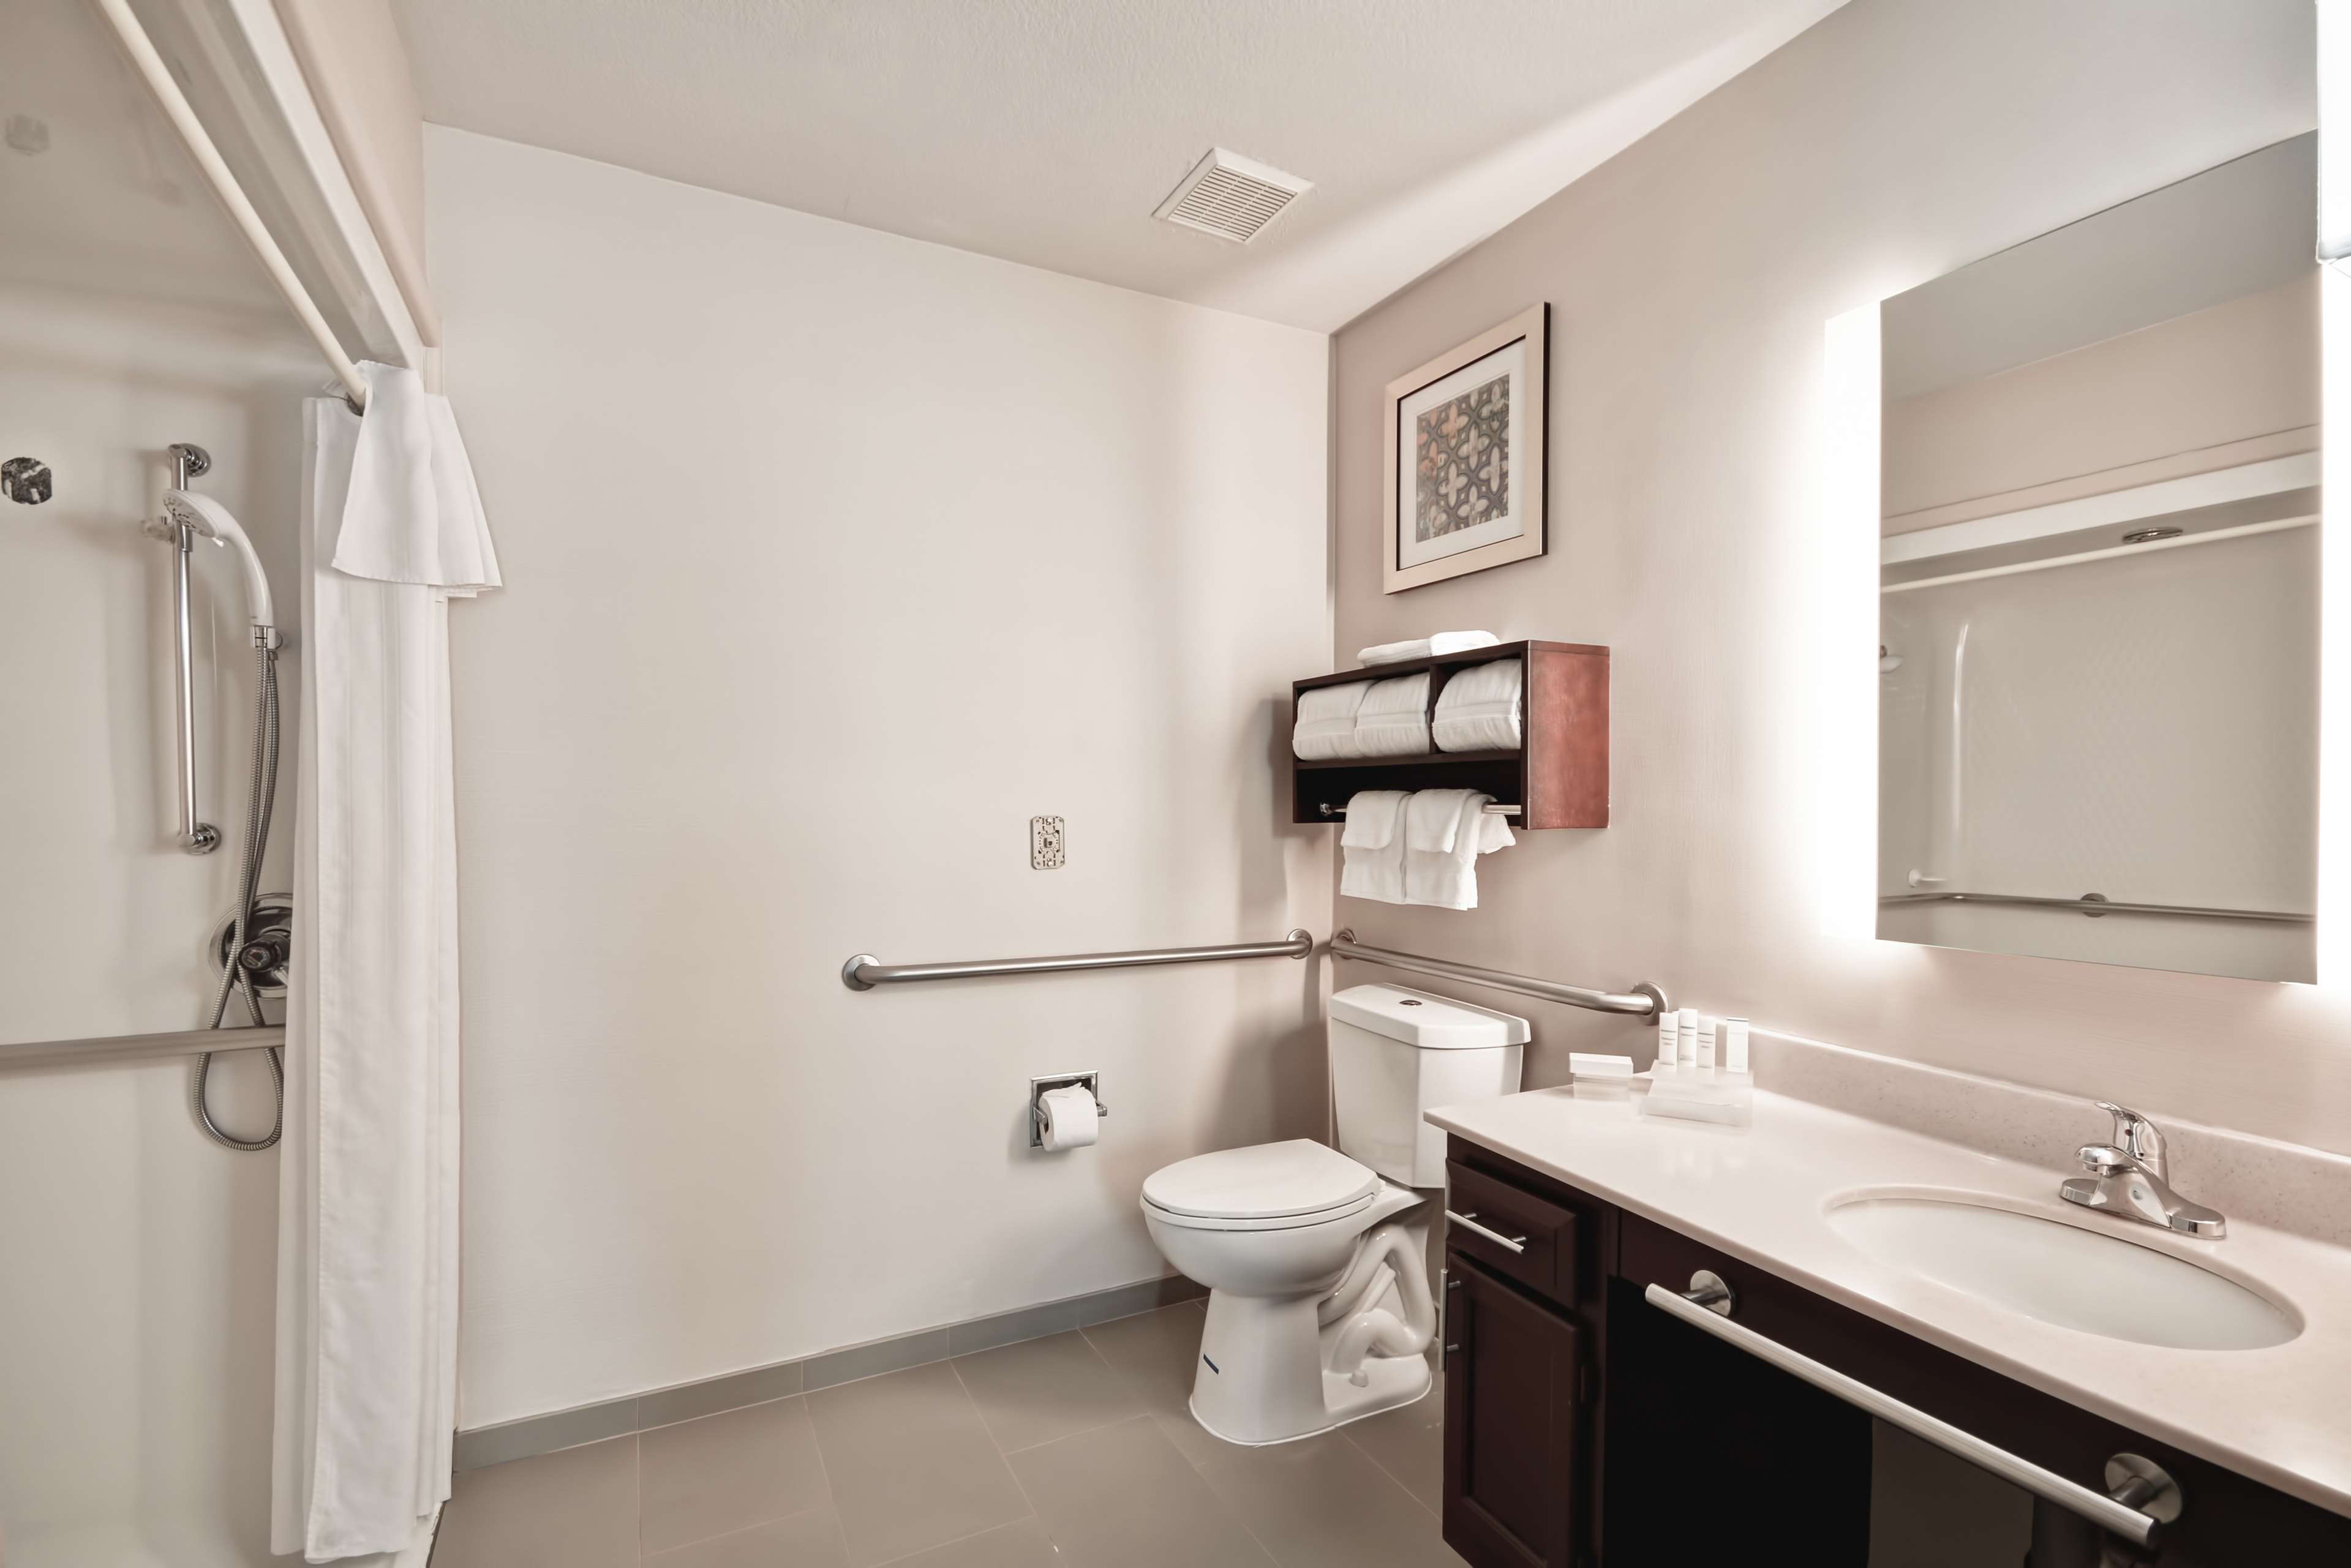 Homewood Suites by Hilton Dallas-Lewisville image 28